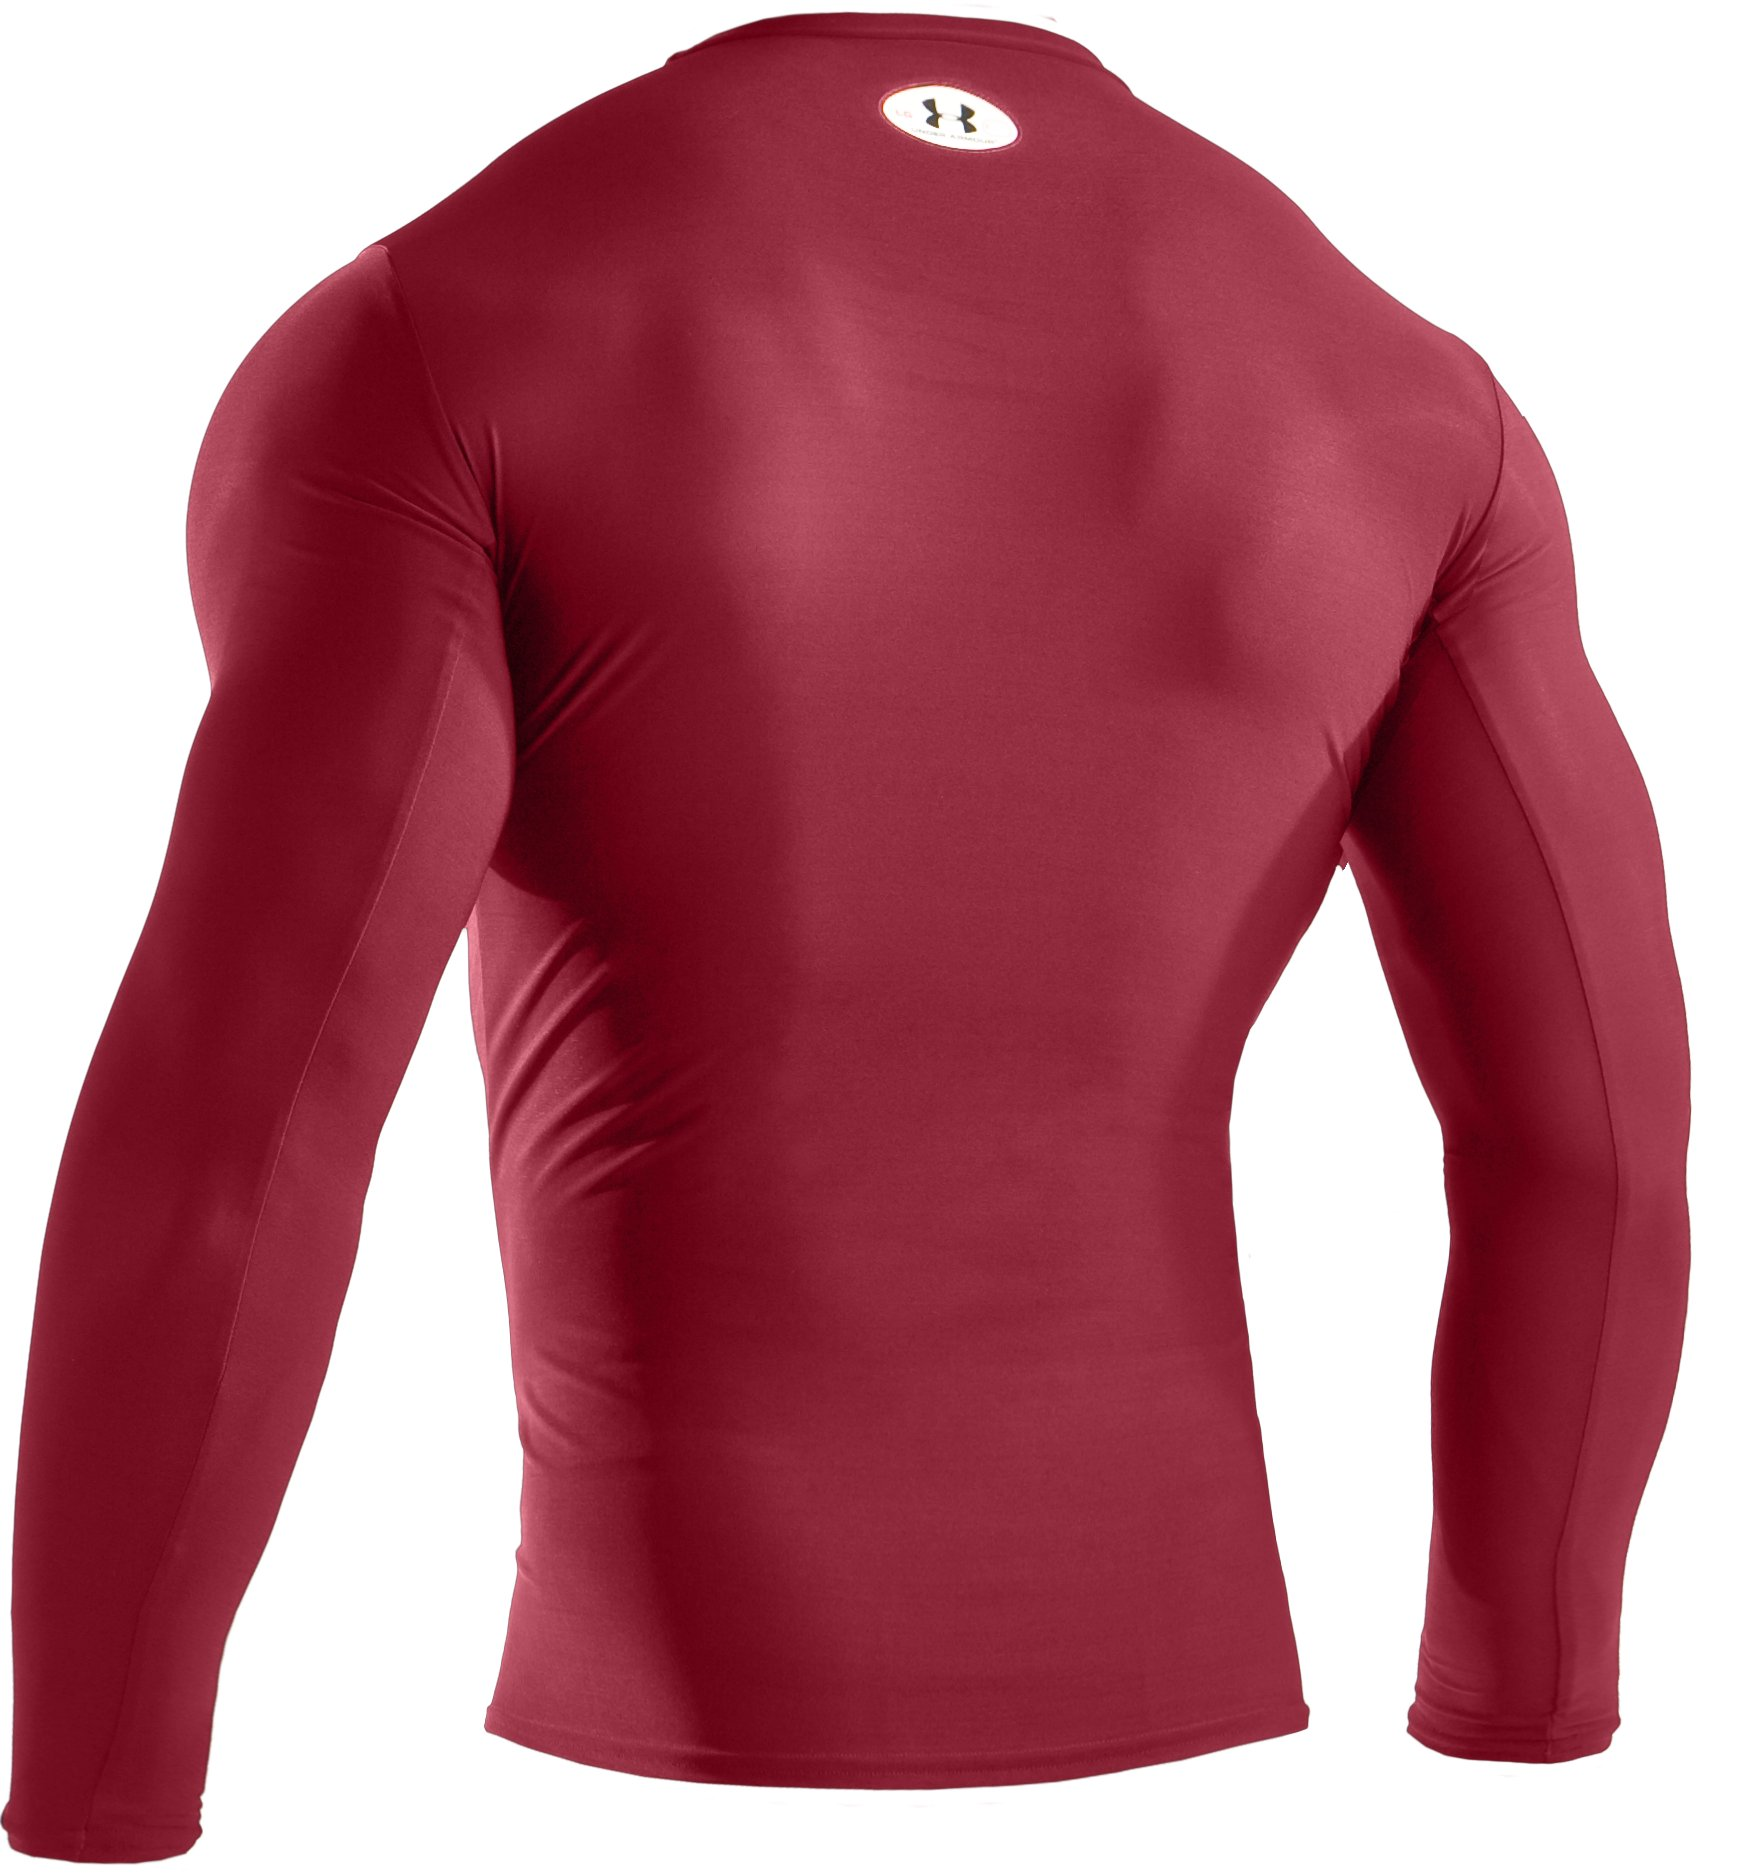 Men's HeatGear® Compression Long Sleeve T-Shirt, Crimson